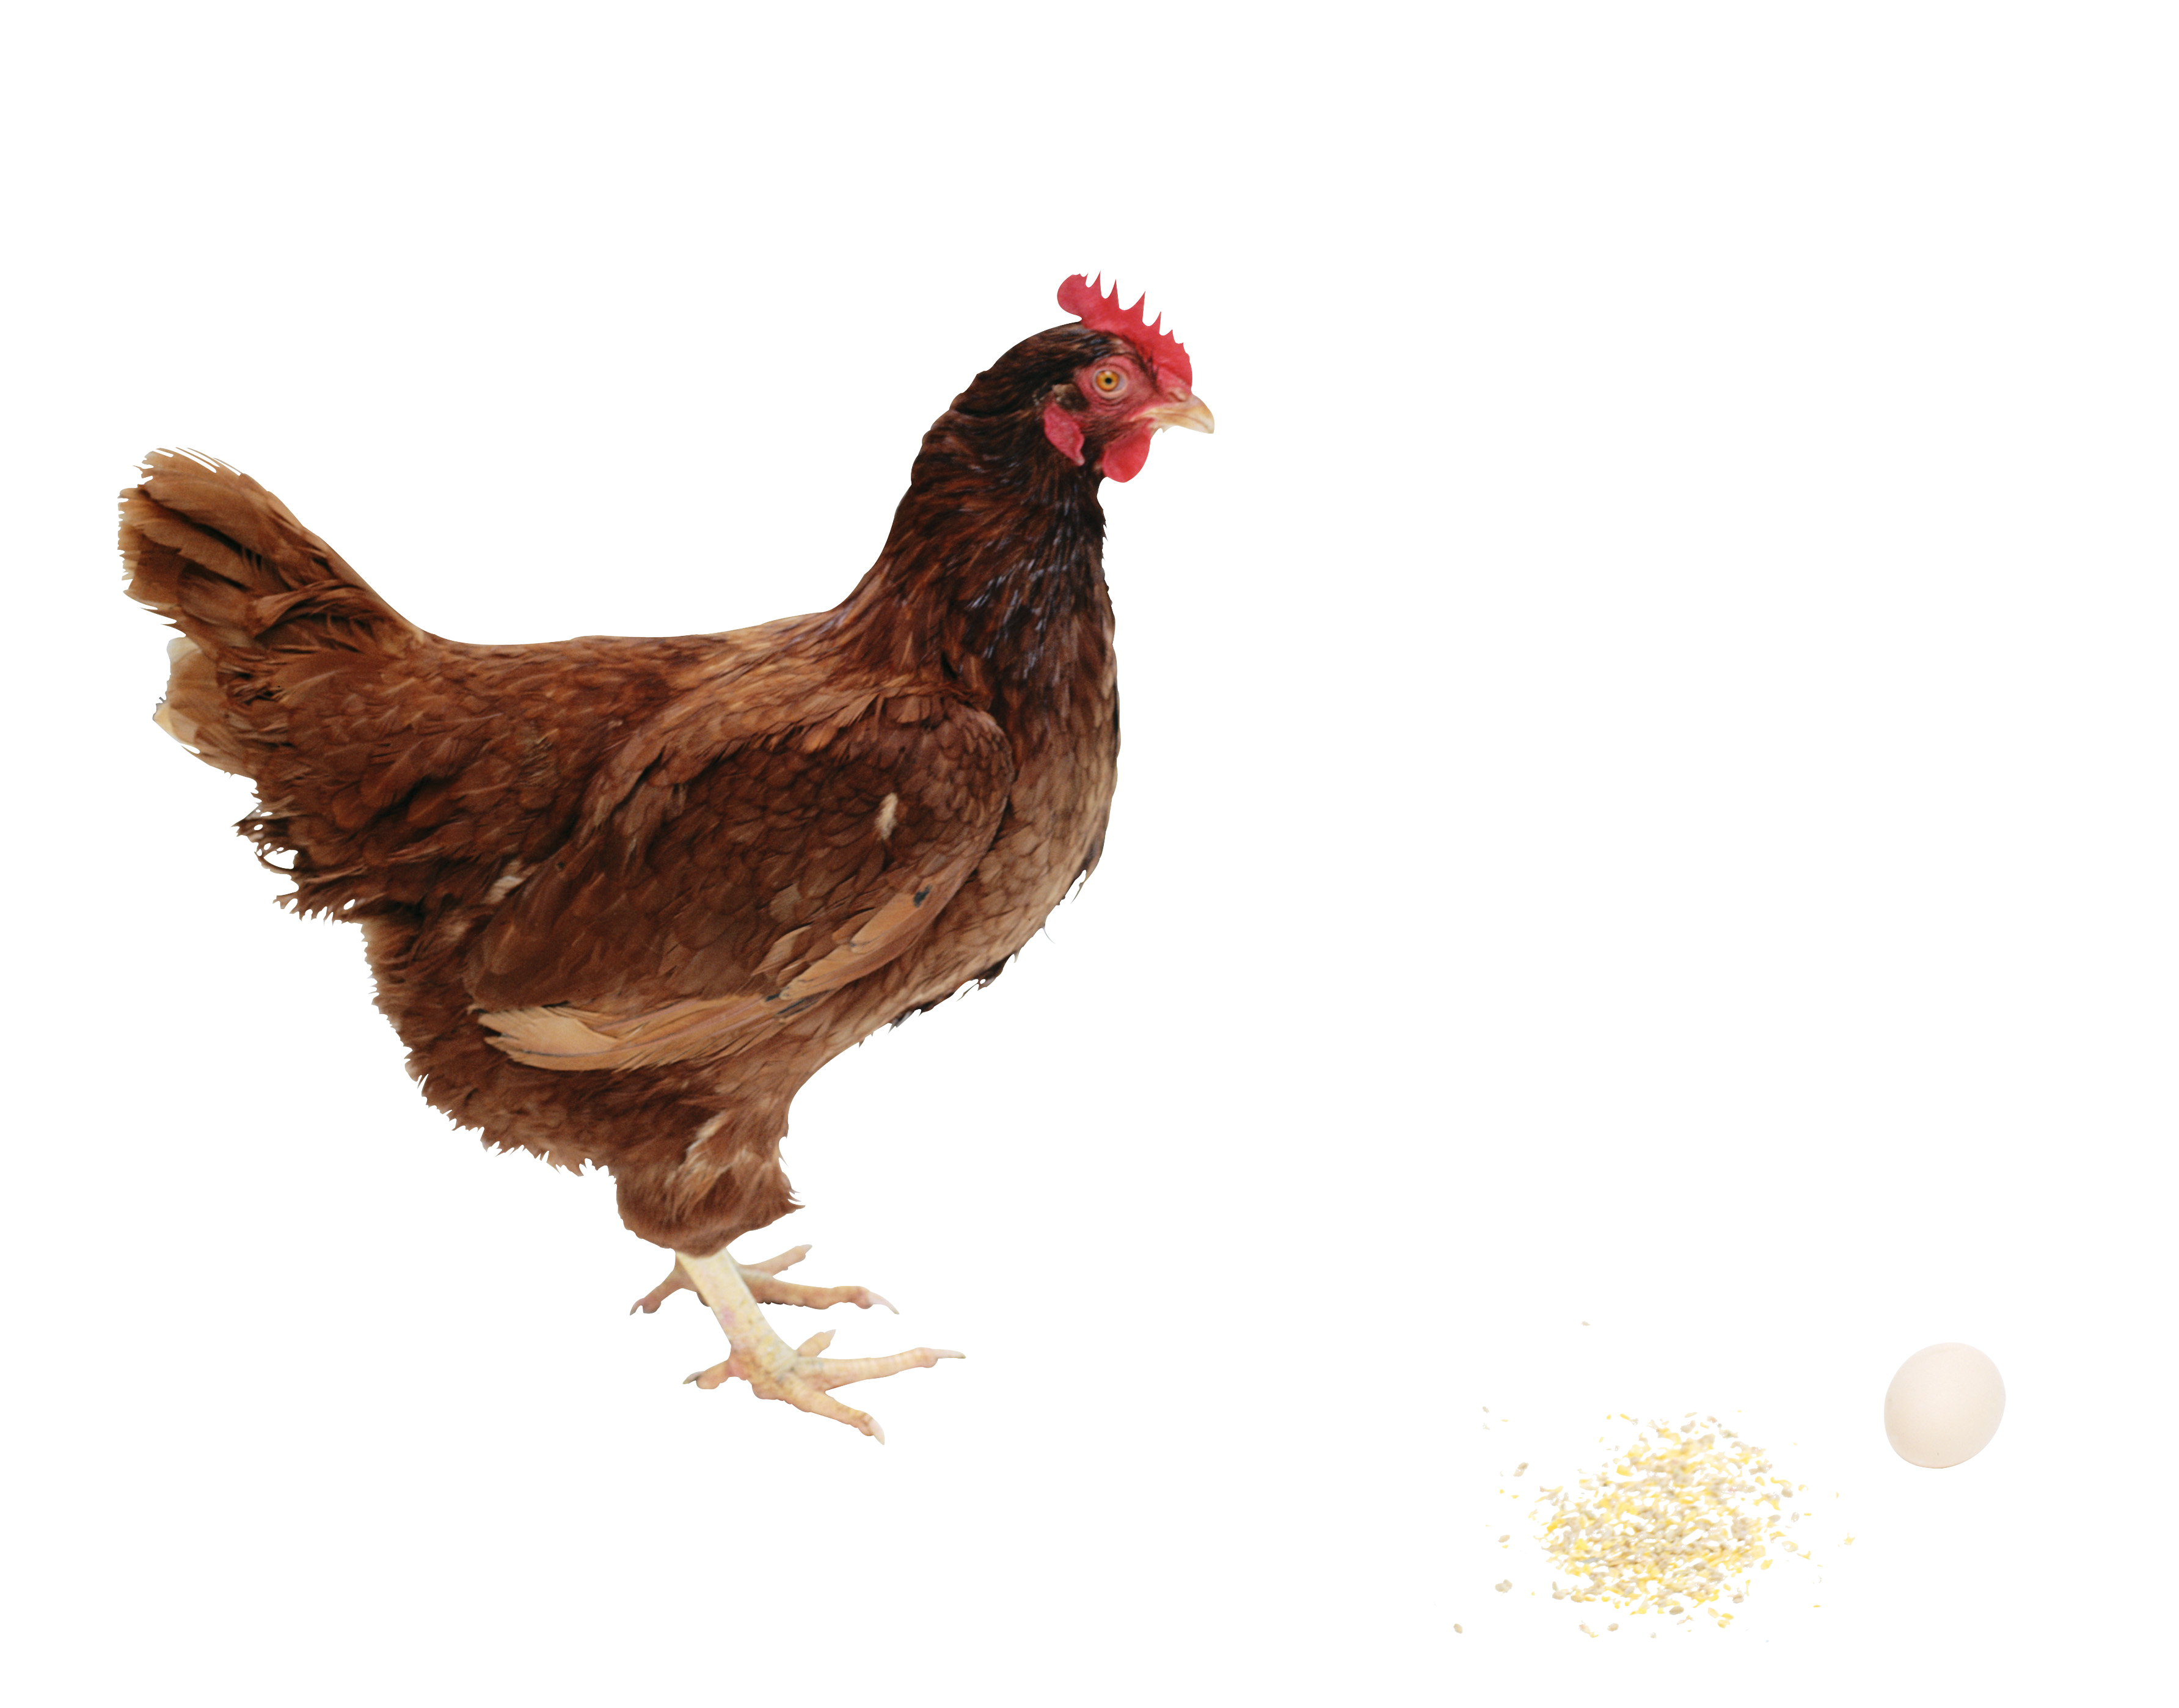 Chicken PNG images, free chicken picture download.